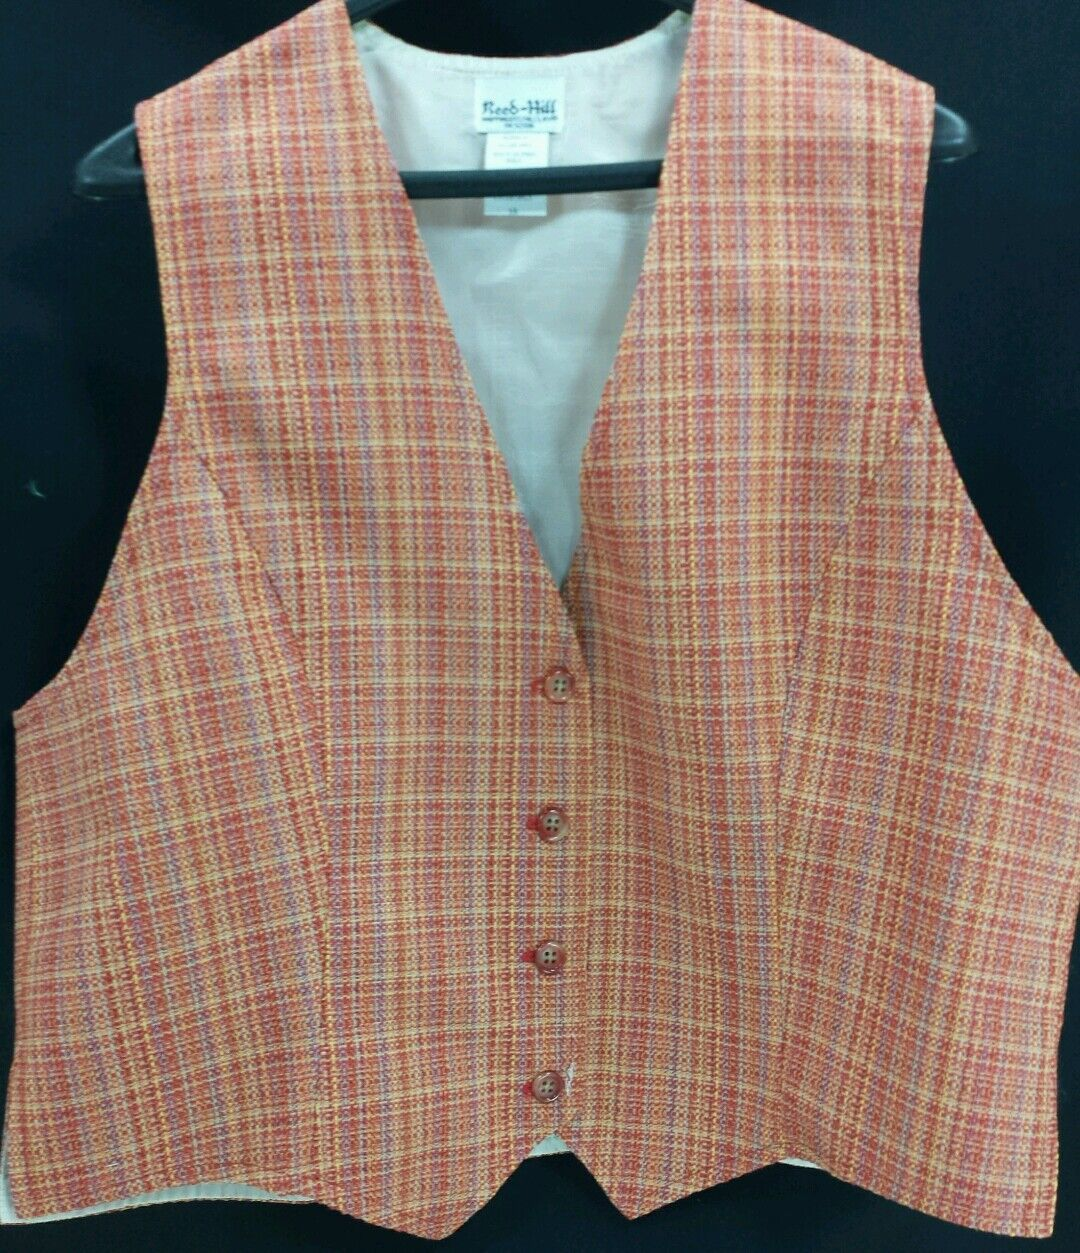 Reed  Hill Ladies Saddleseat Vest SUNSET TWEED ( Red   orange )  Polyester Blend  online shopping